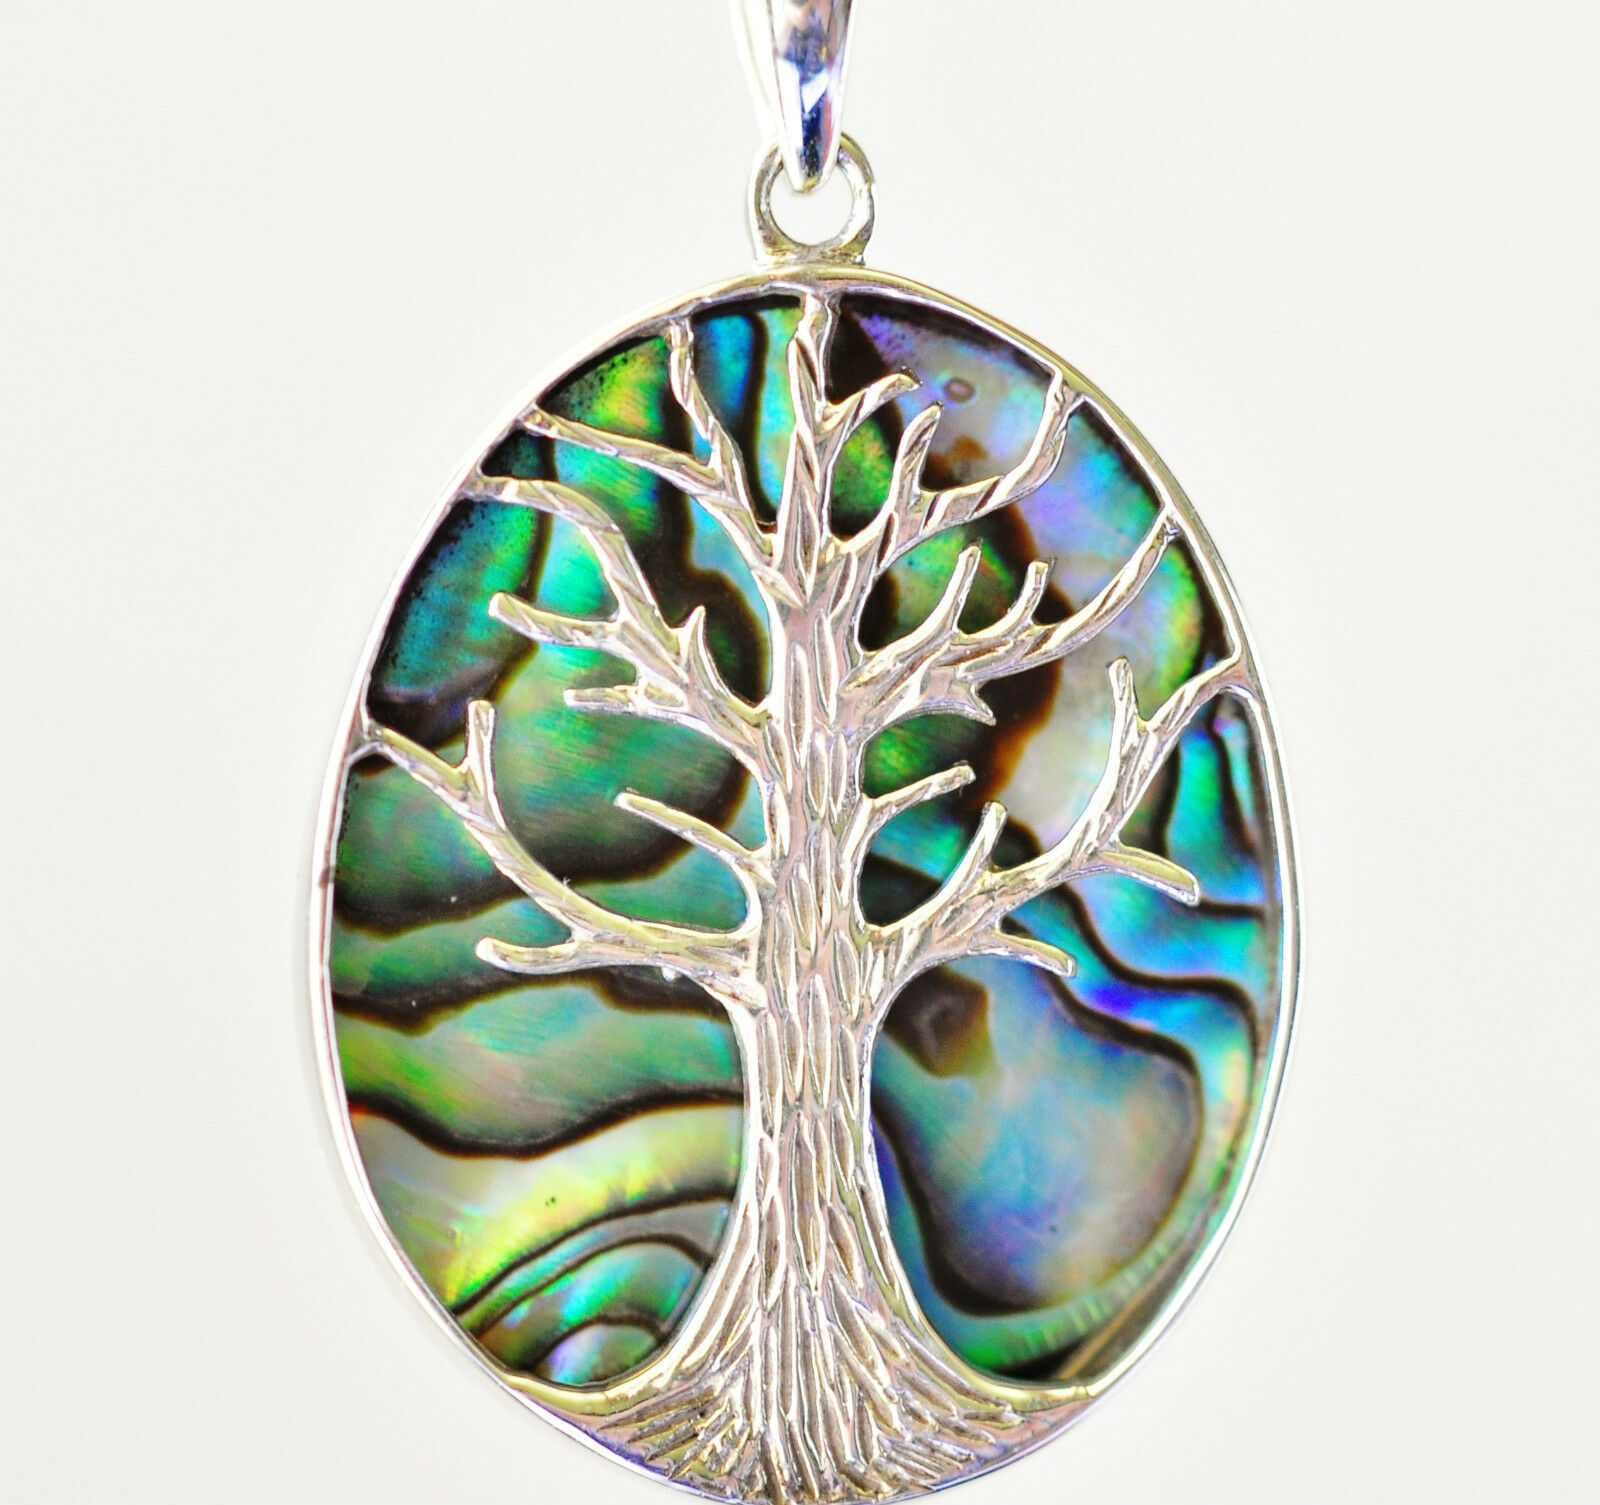 pendant sterling paua and abalone to pin want dtpsilver know shell more teardrop silver